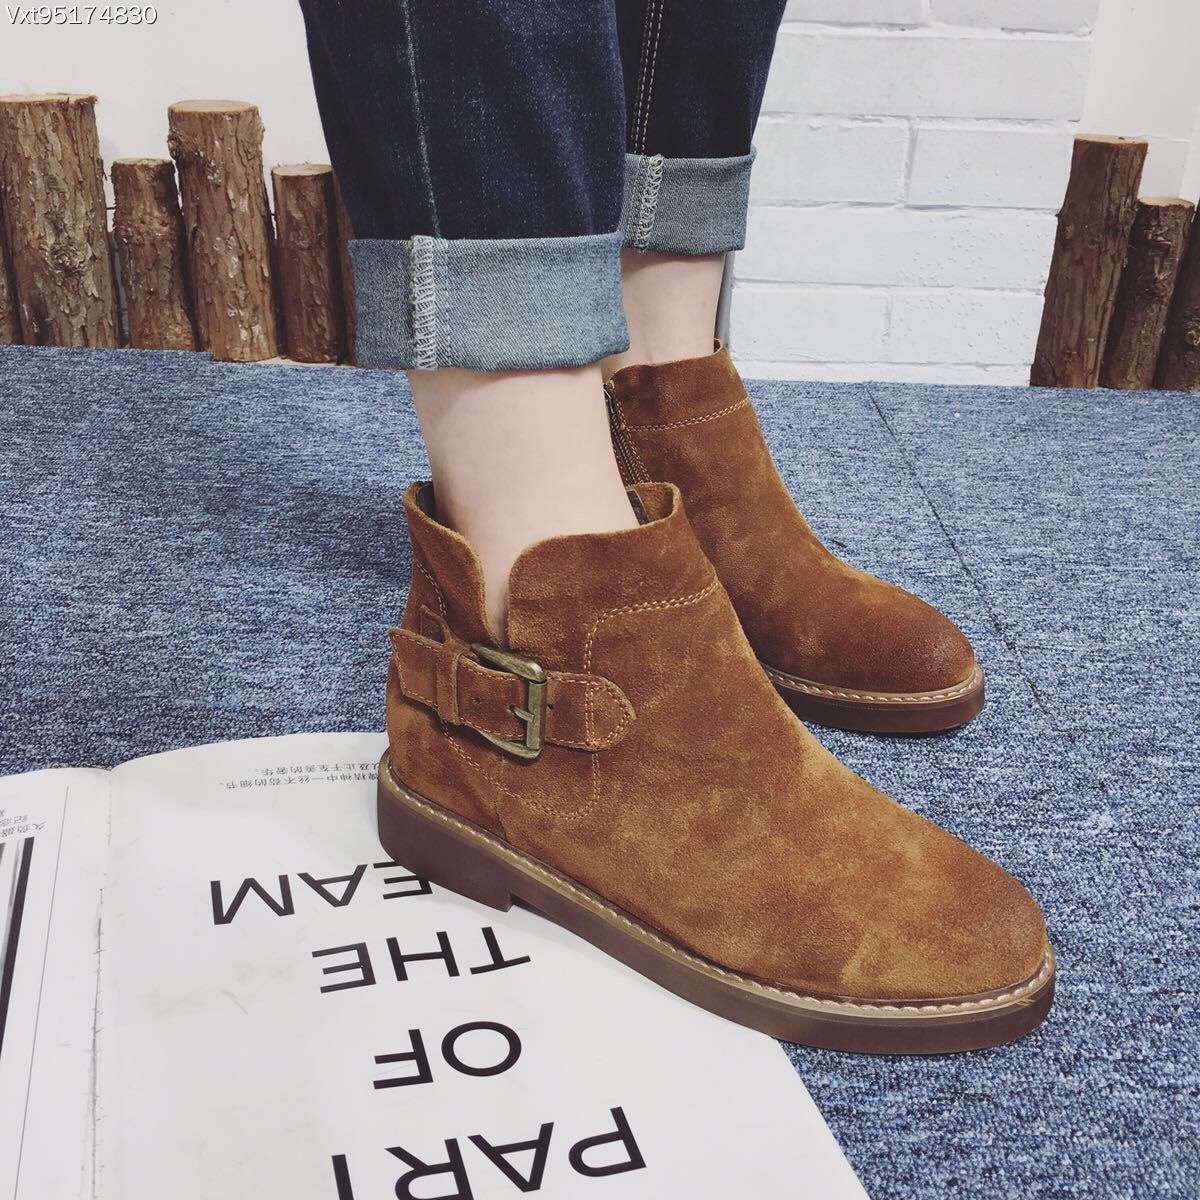 ФОТО Suede Cowhide Leather Shoes Women's Boots Genuine Leather Buckle Ankle Boots Thick Heel Zipper Boots Black Brown